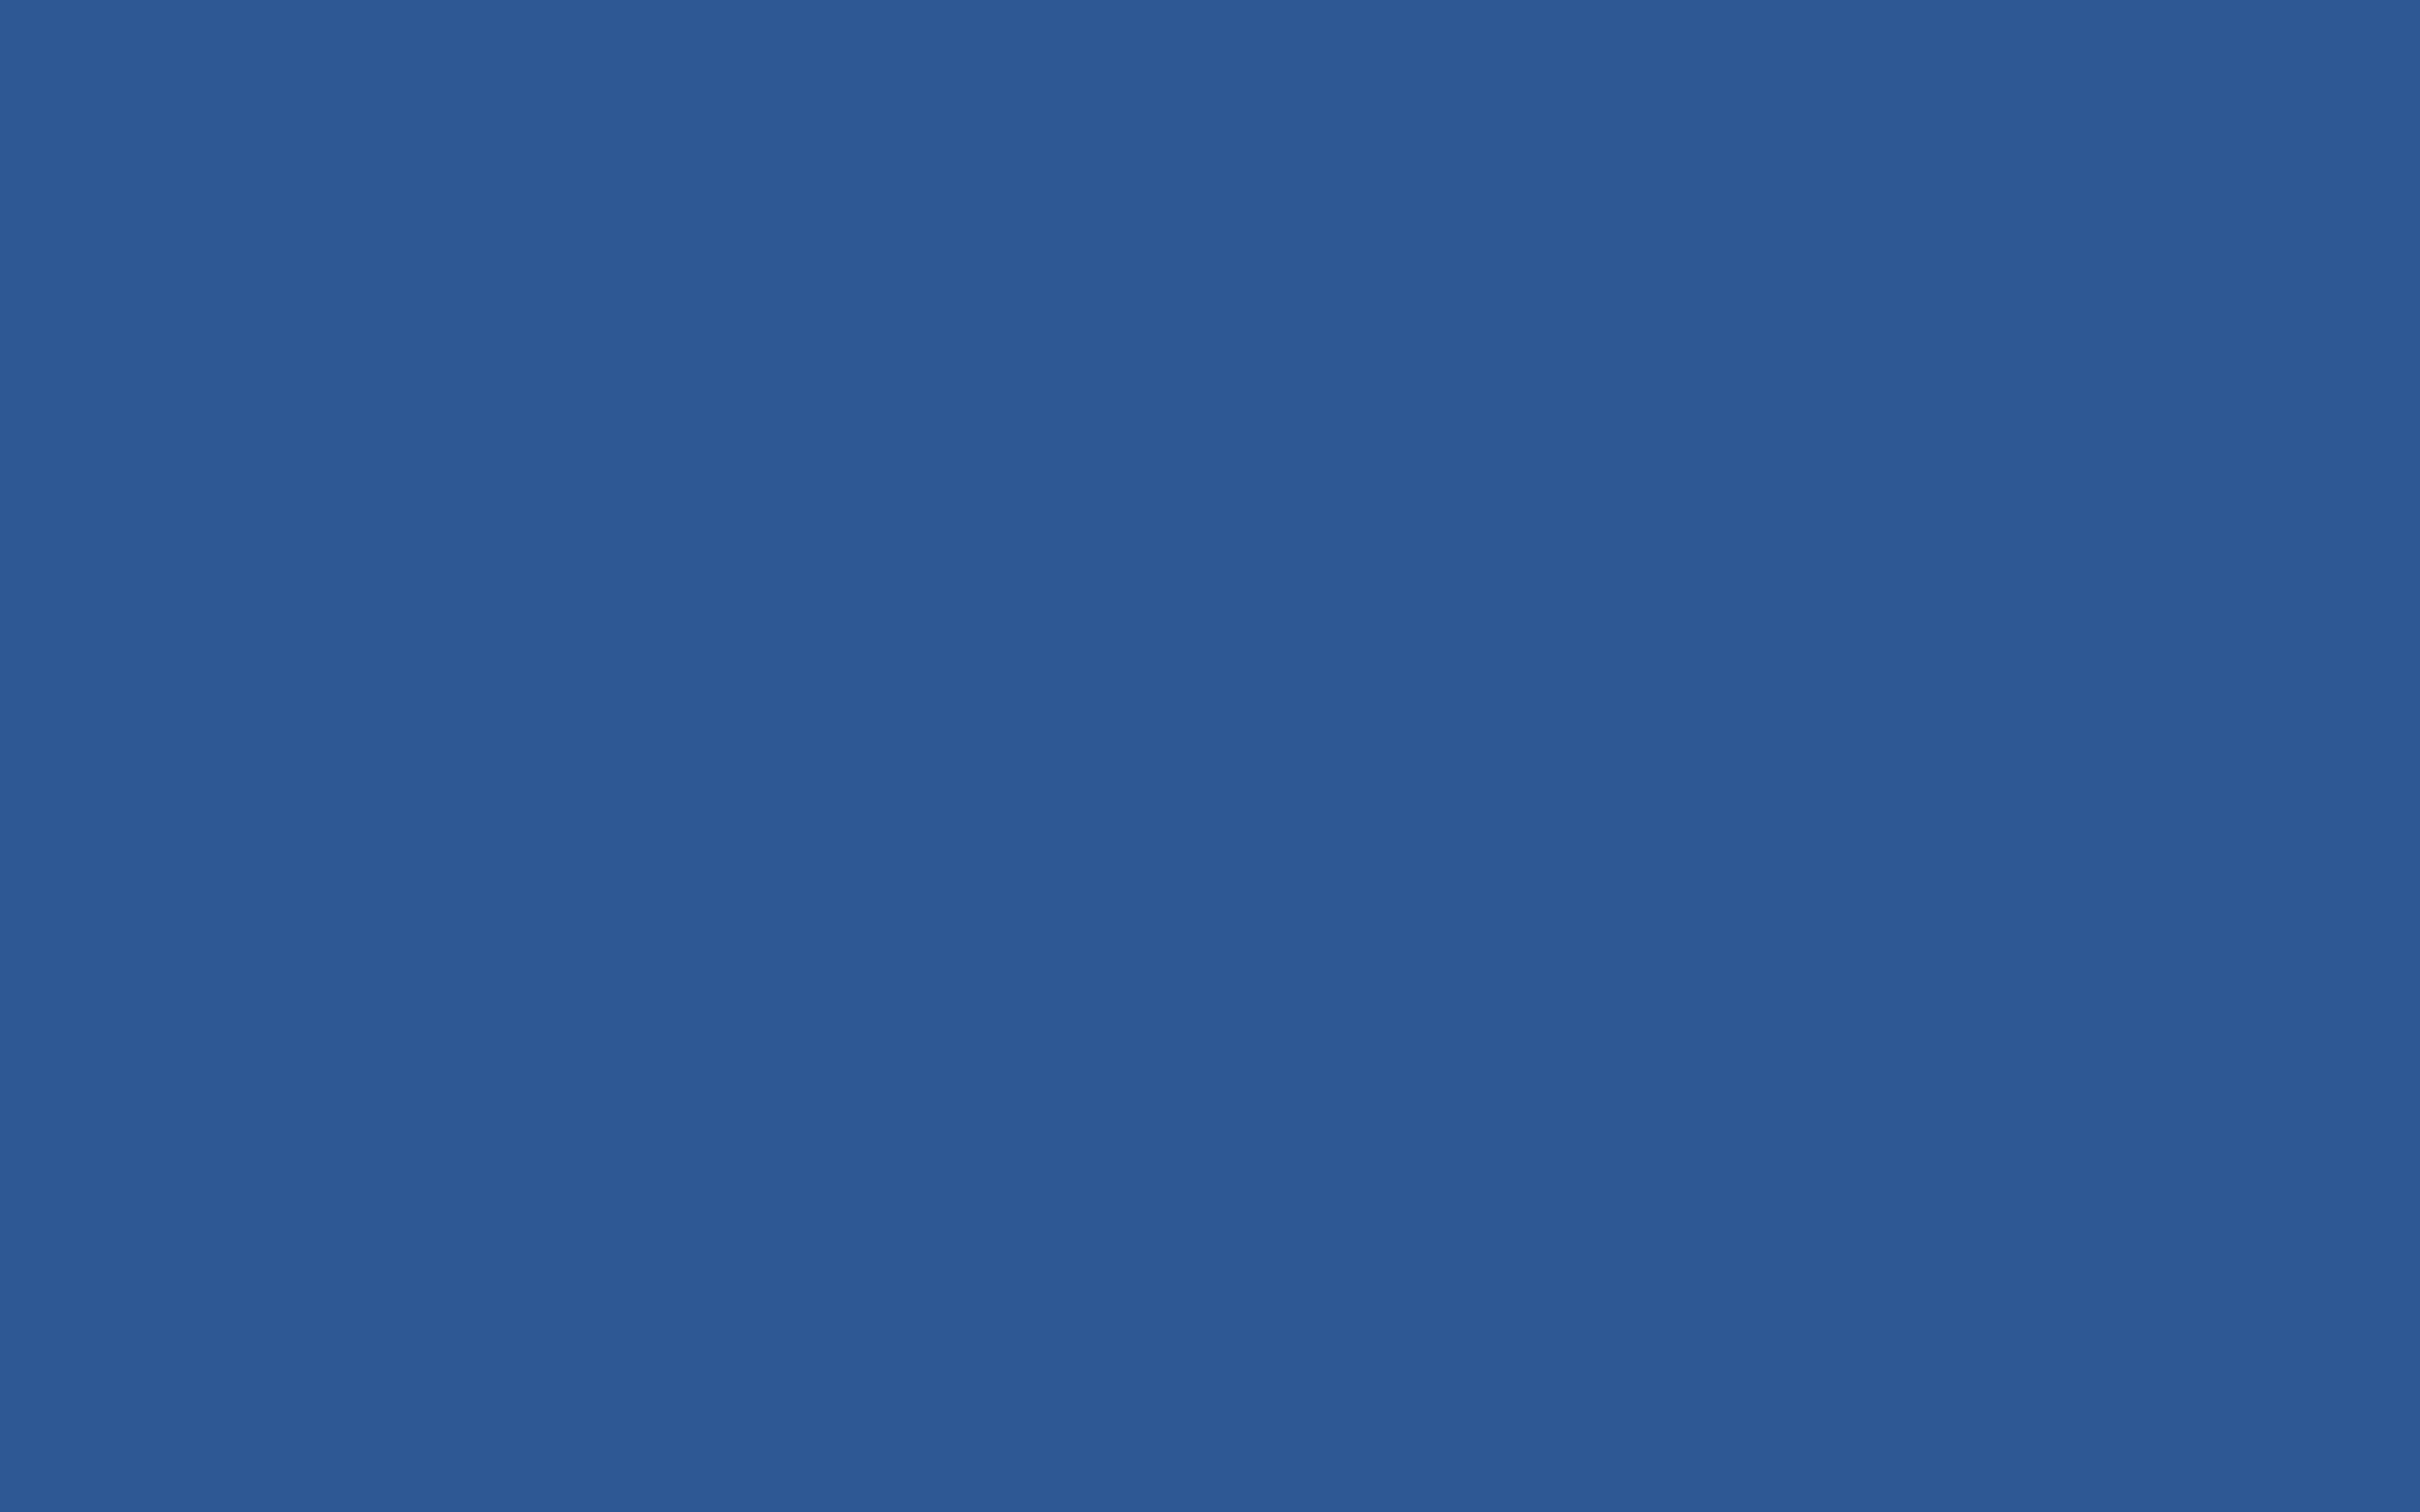 2880x1800 Bdazzled Blue Solid Color Background